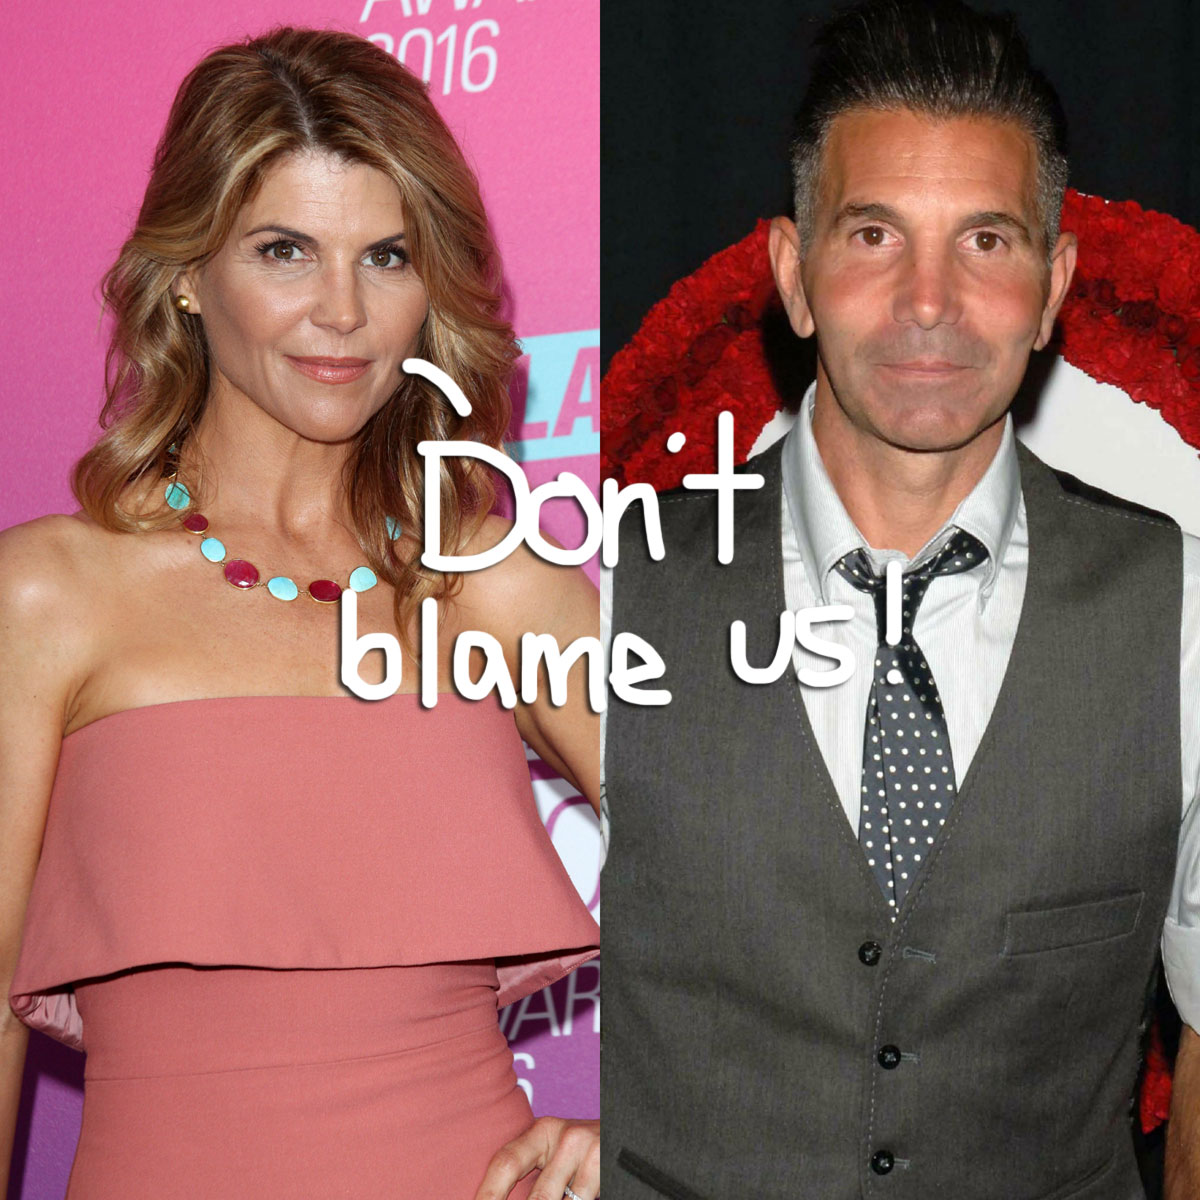 Lori Loughlin and Mossimo Giannulli reportedly don't feel at blame